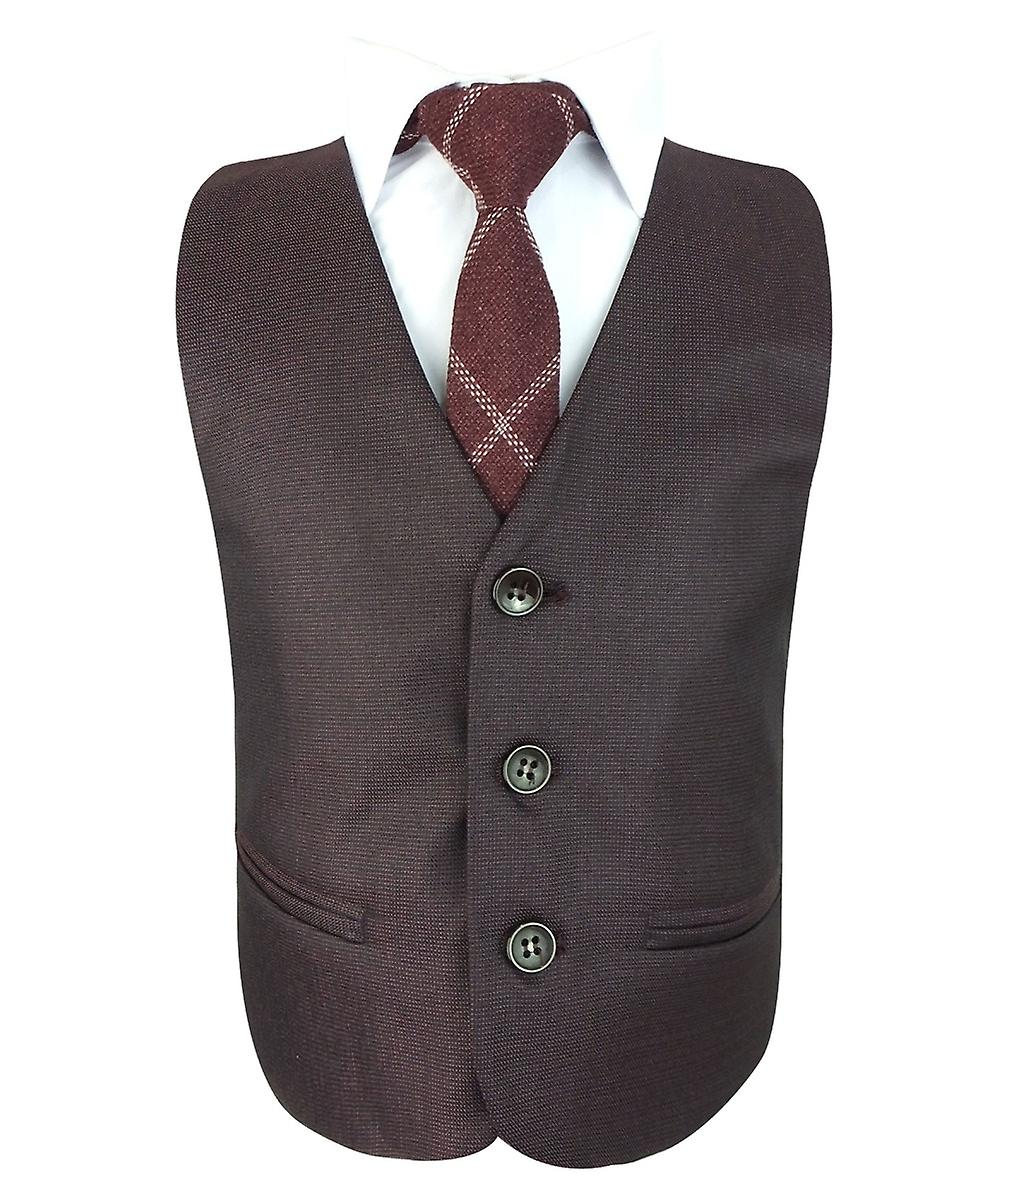 top-rated latest elegant and sturdy package factory price Boys Tailored Fit Burgundy 6 Piece Complete Suit Set